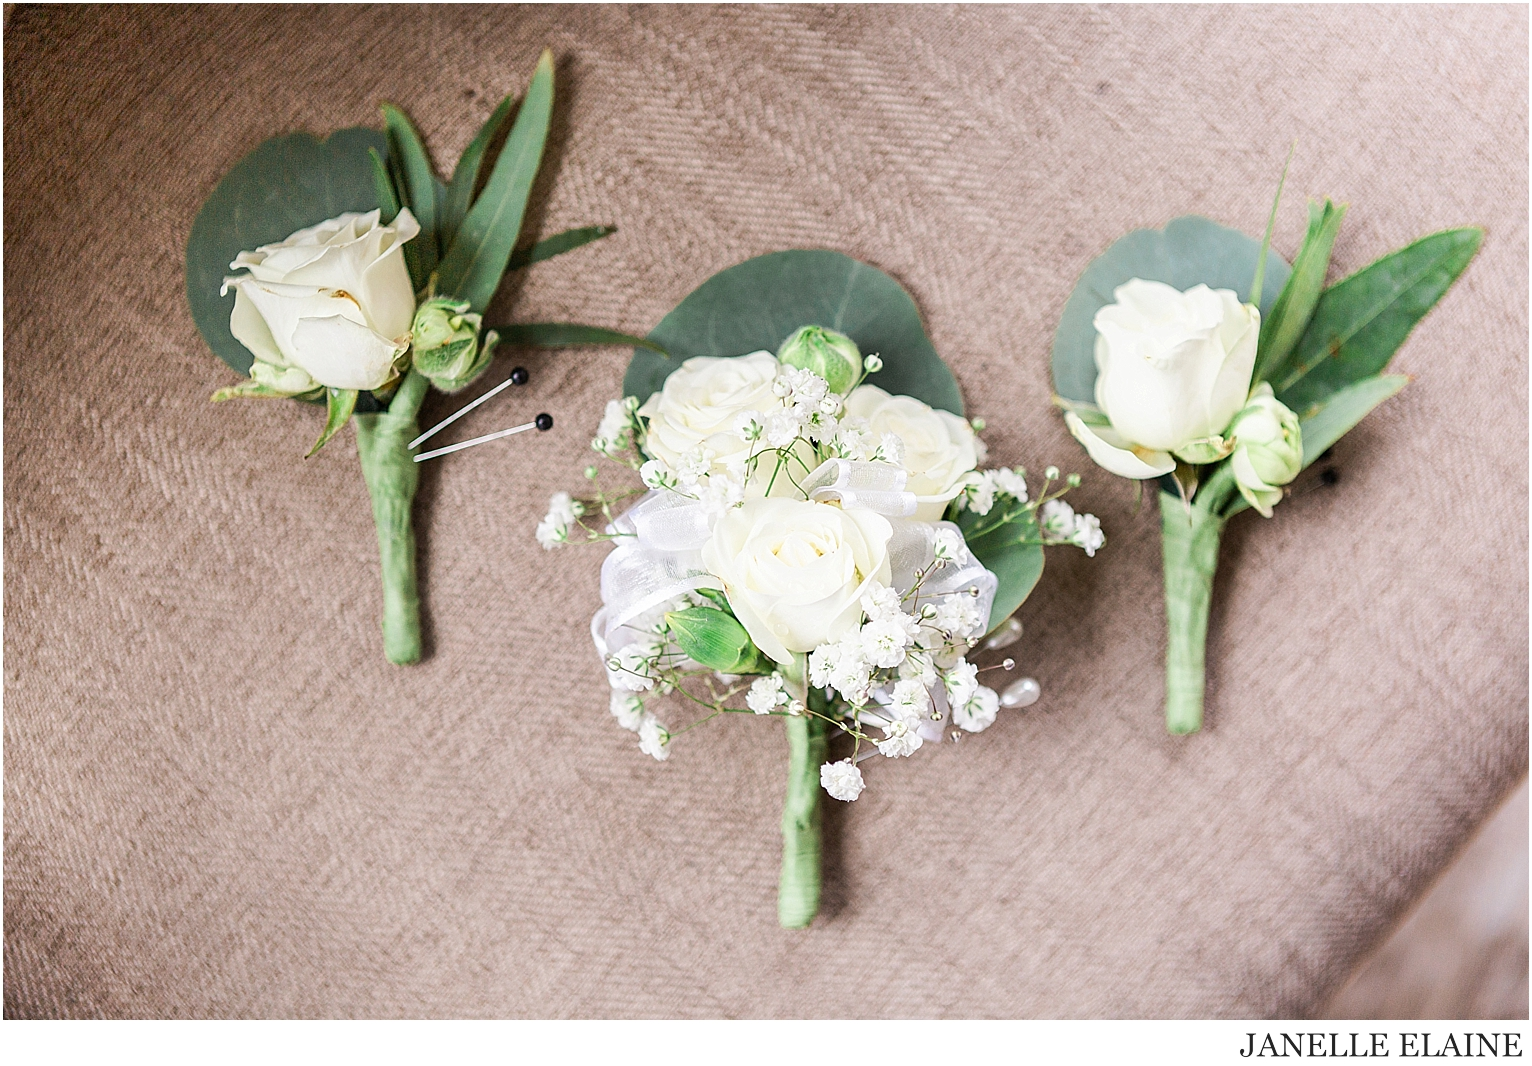 Tricia and Nathan Goddard Wedding-Getting Ready Photos-Janelle Elaine Photography-24.jpg